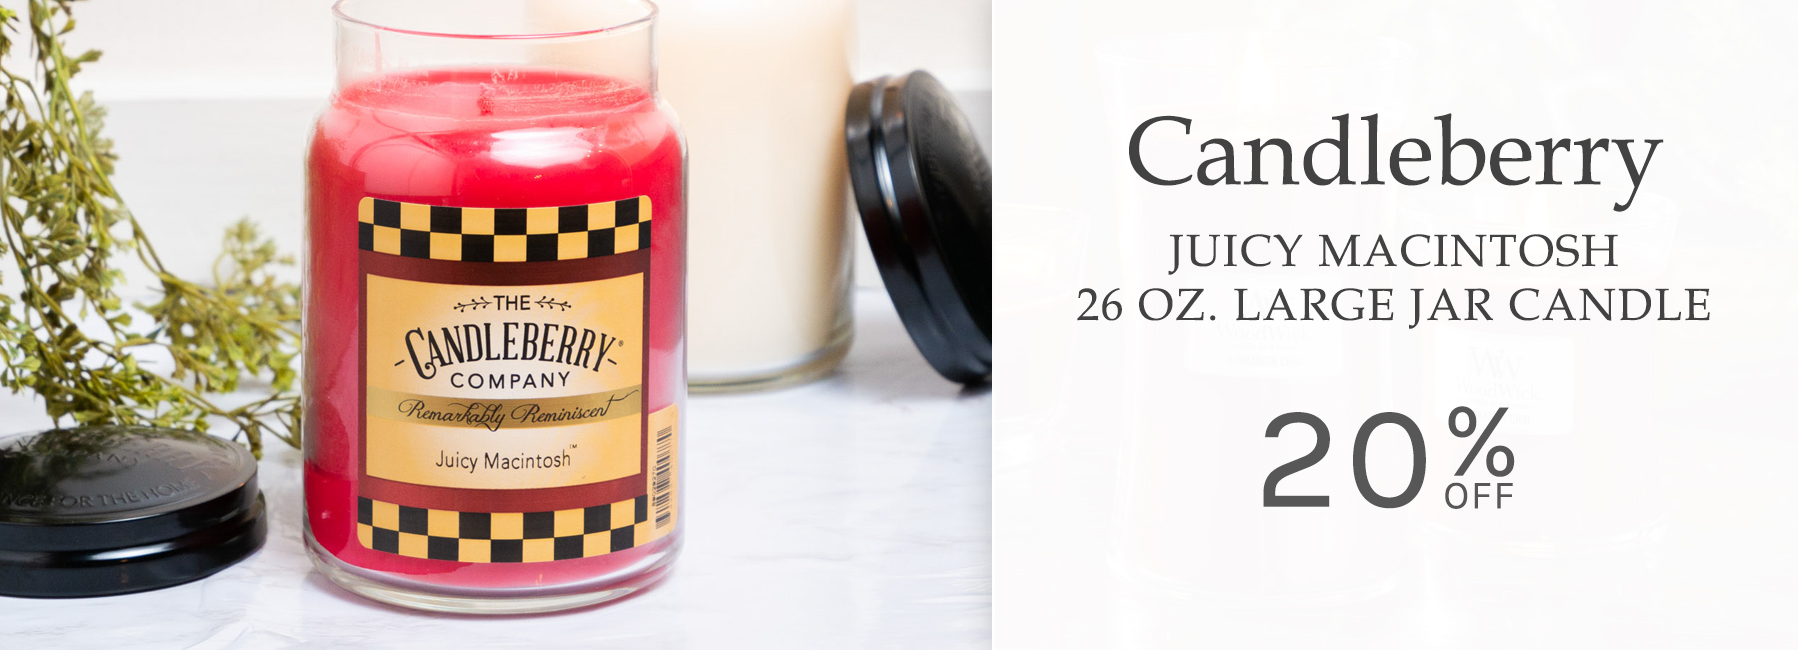 Candleberry - Juicy Macintosh 26 Ounce Large Jar Candle - 20 Percent OFF